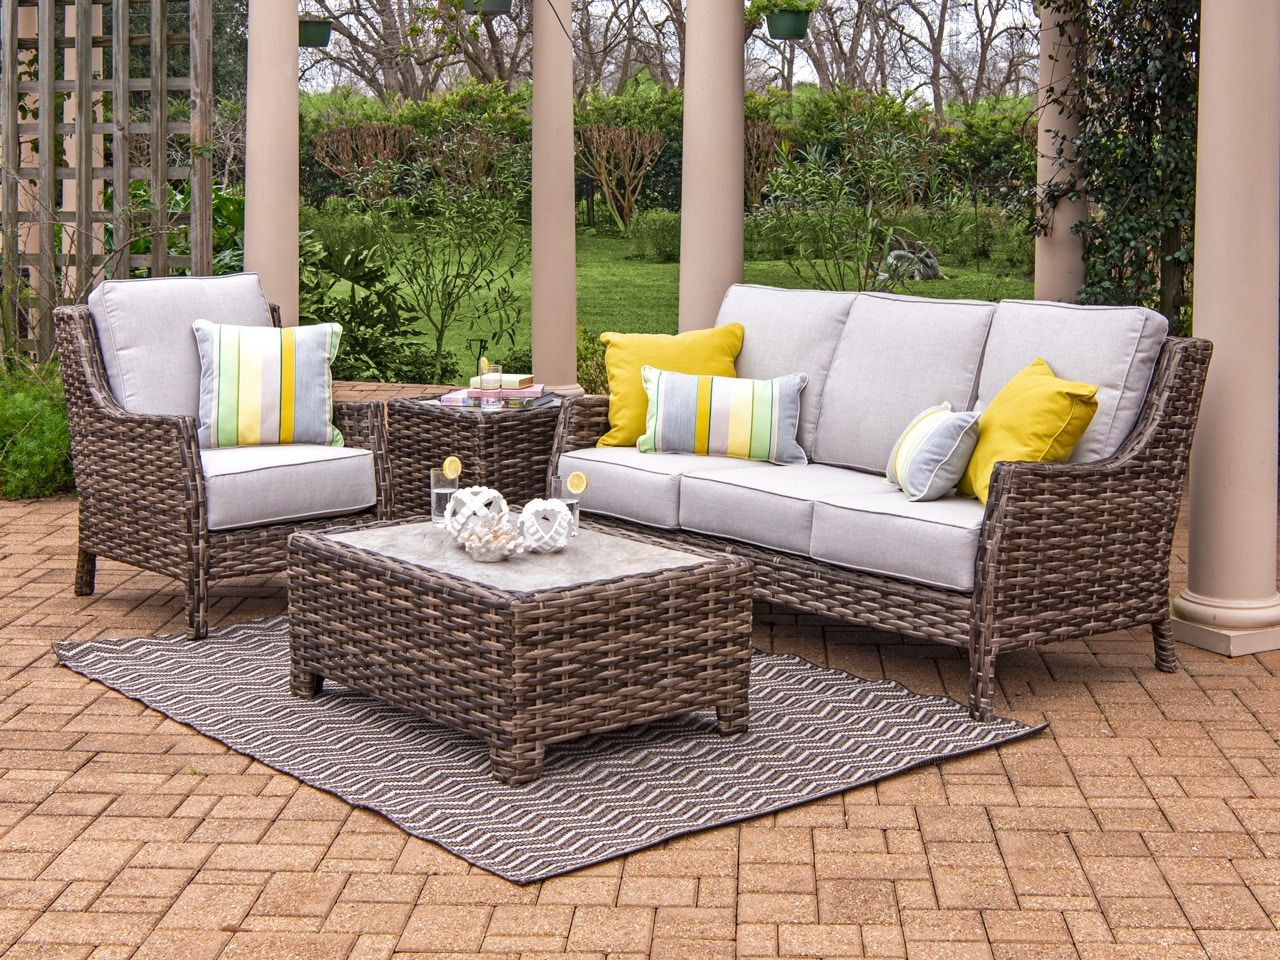 Living Room Cabo Caribou Outdoor Wicker And Idol Seagull Cushion 3 Pc Sofa Group With 40 X 28 In Coffee Table 3729509 In 2020 Outdoor Wicker Outdoor Comfort Outdoor Furniture Sets